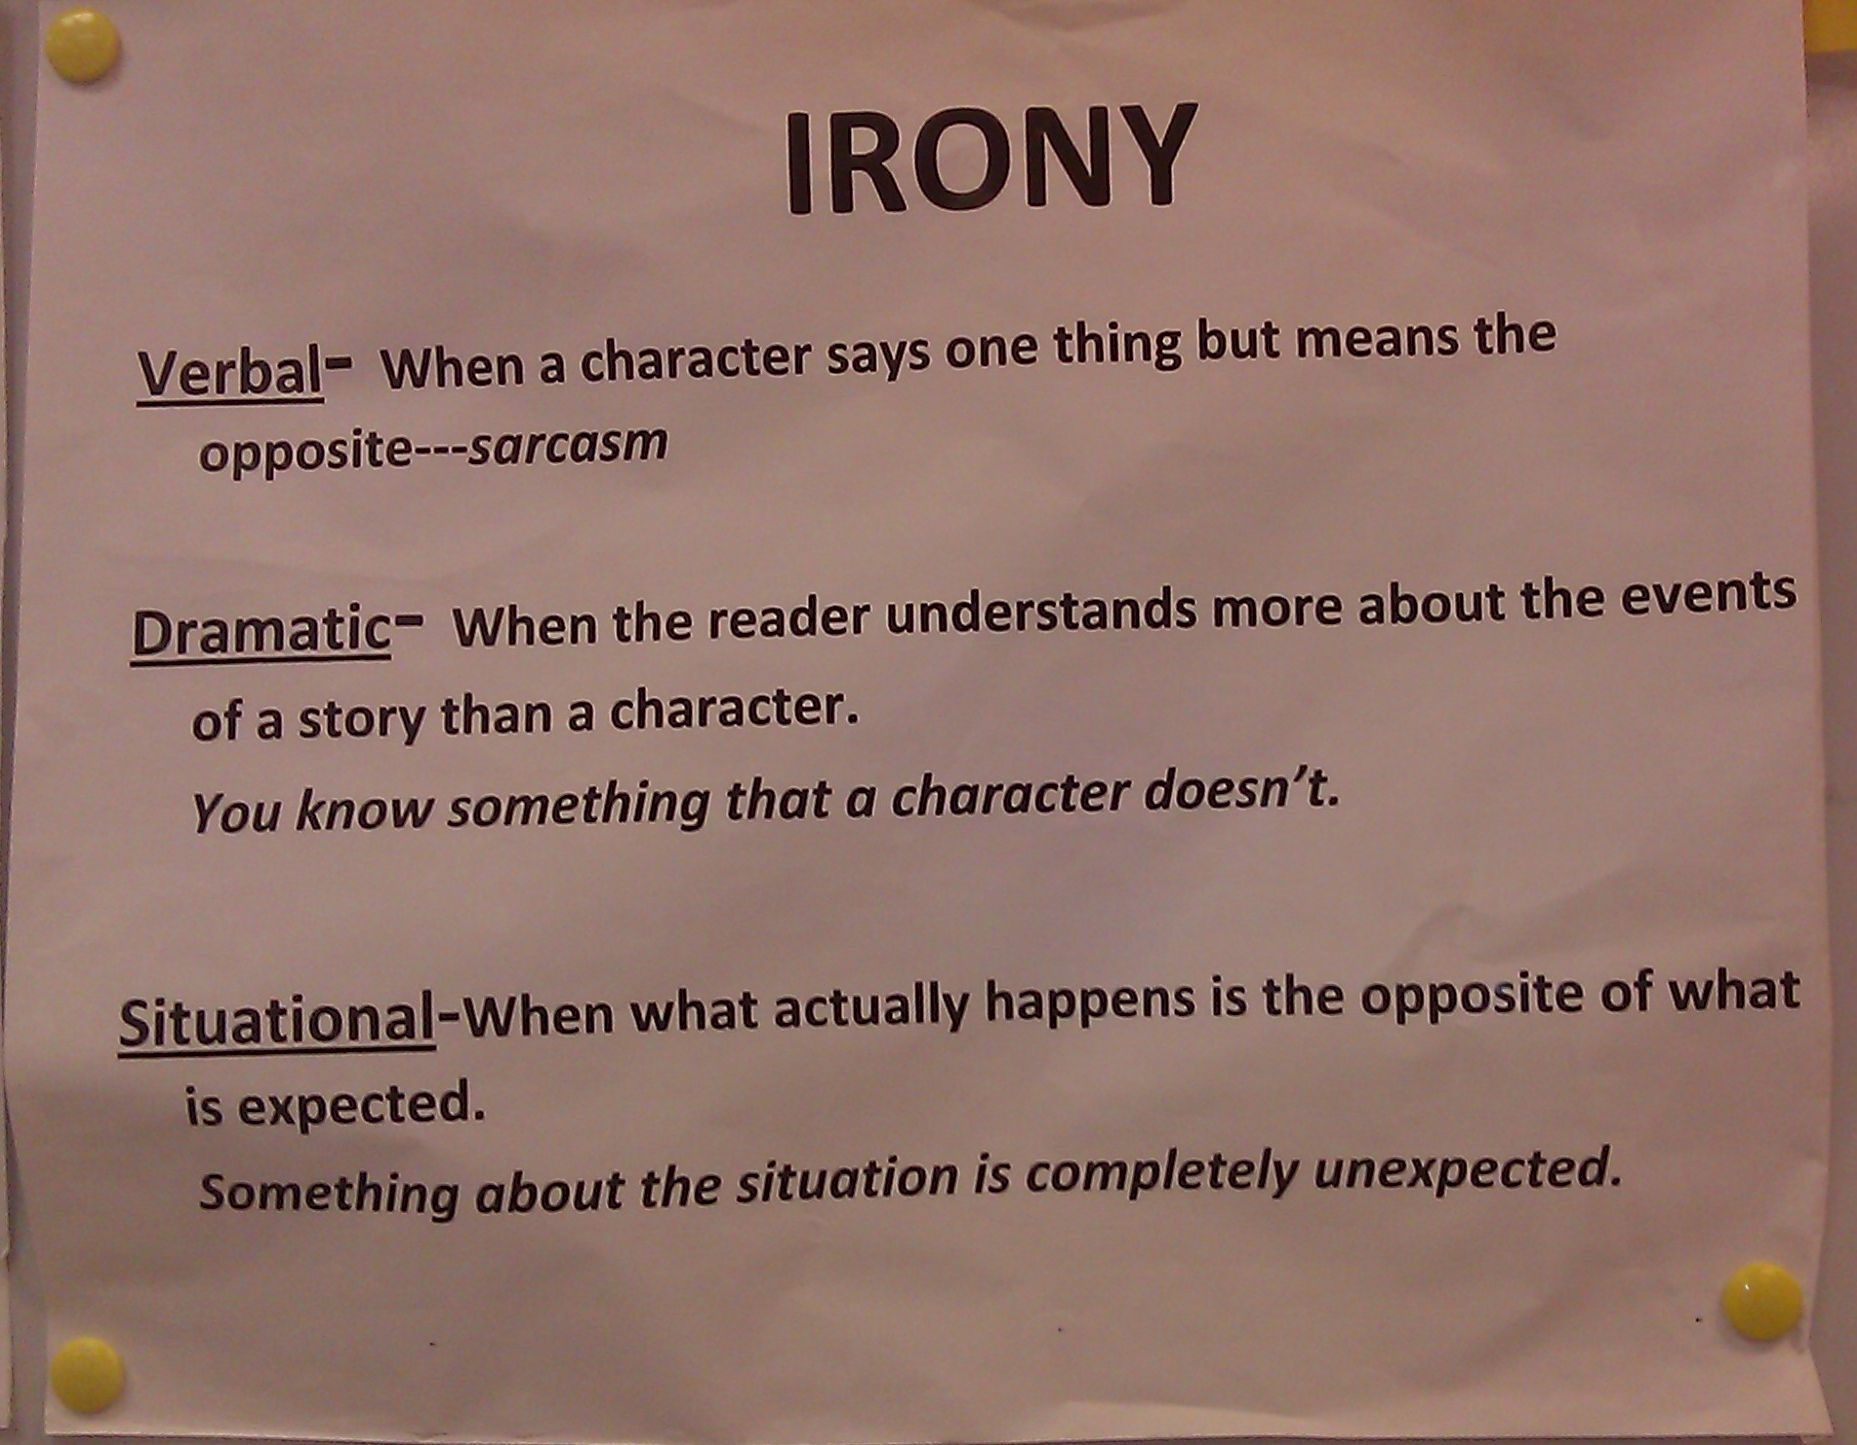 35 Irony Worksheet For Middle School